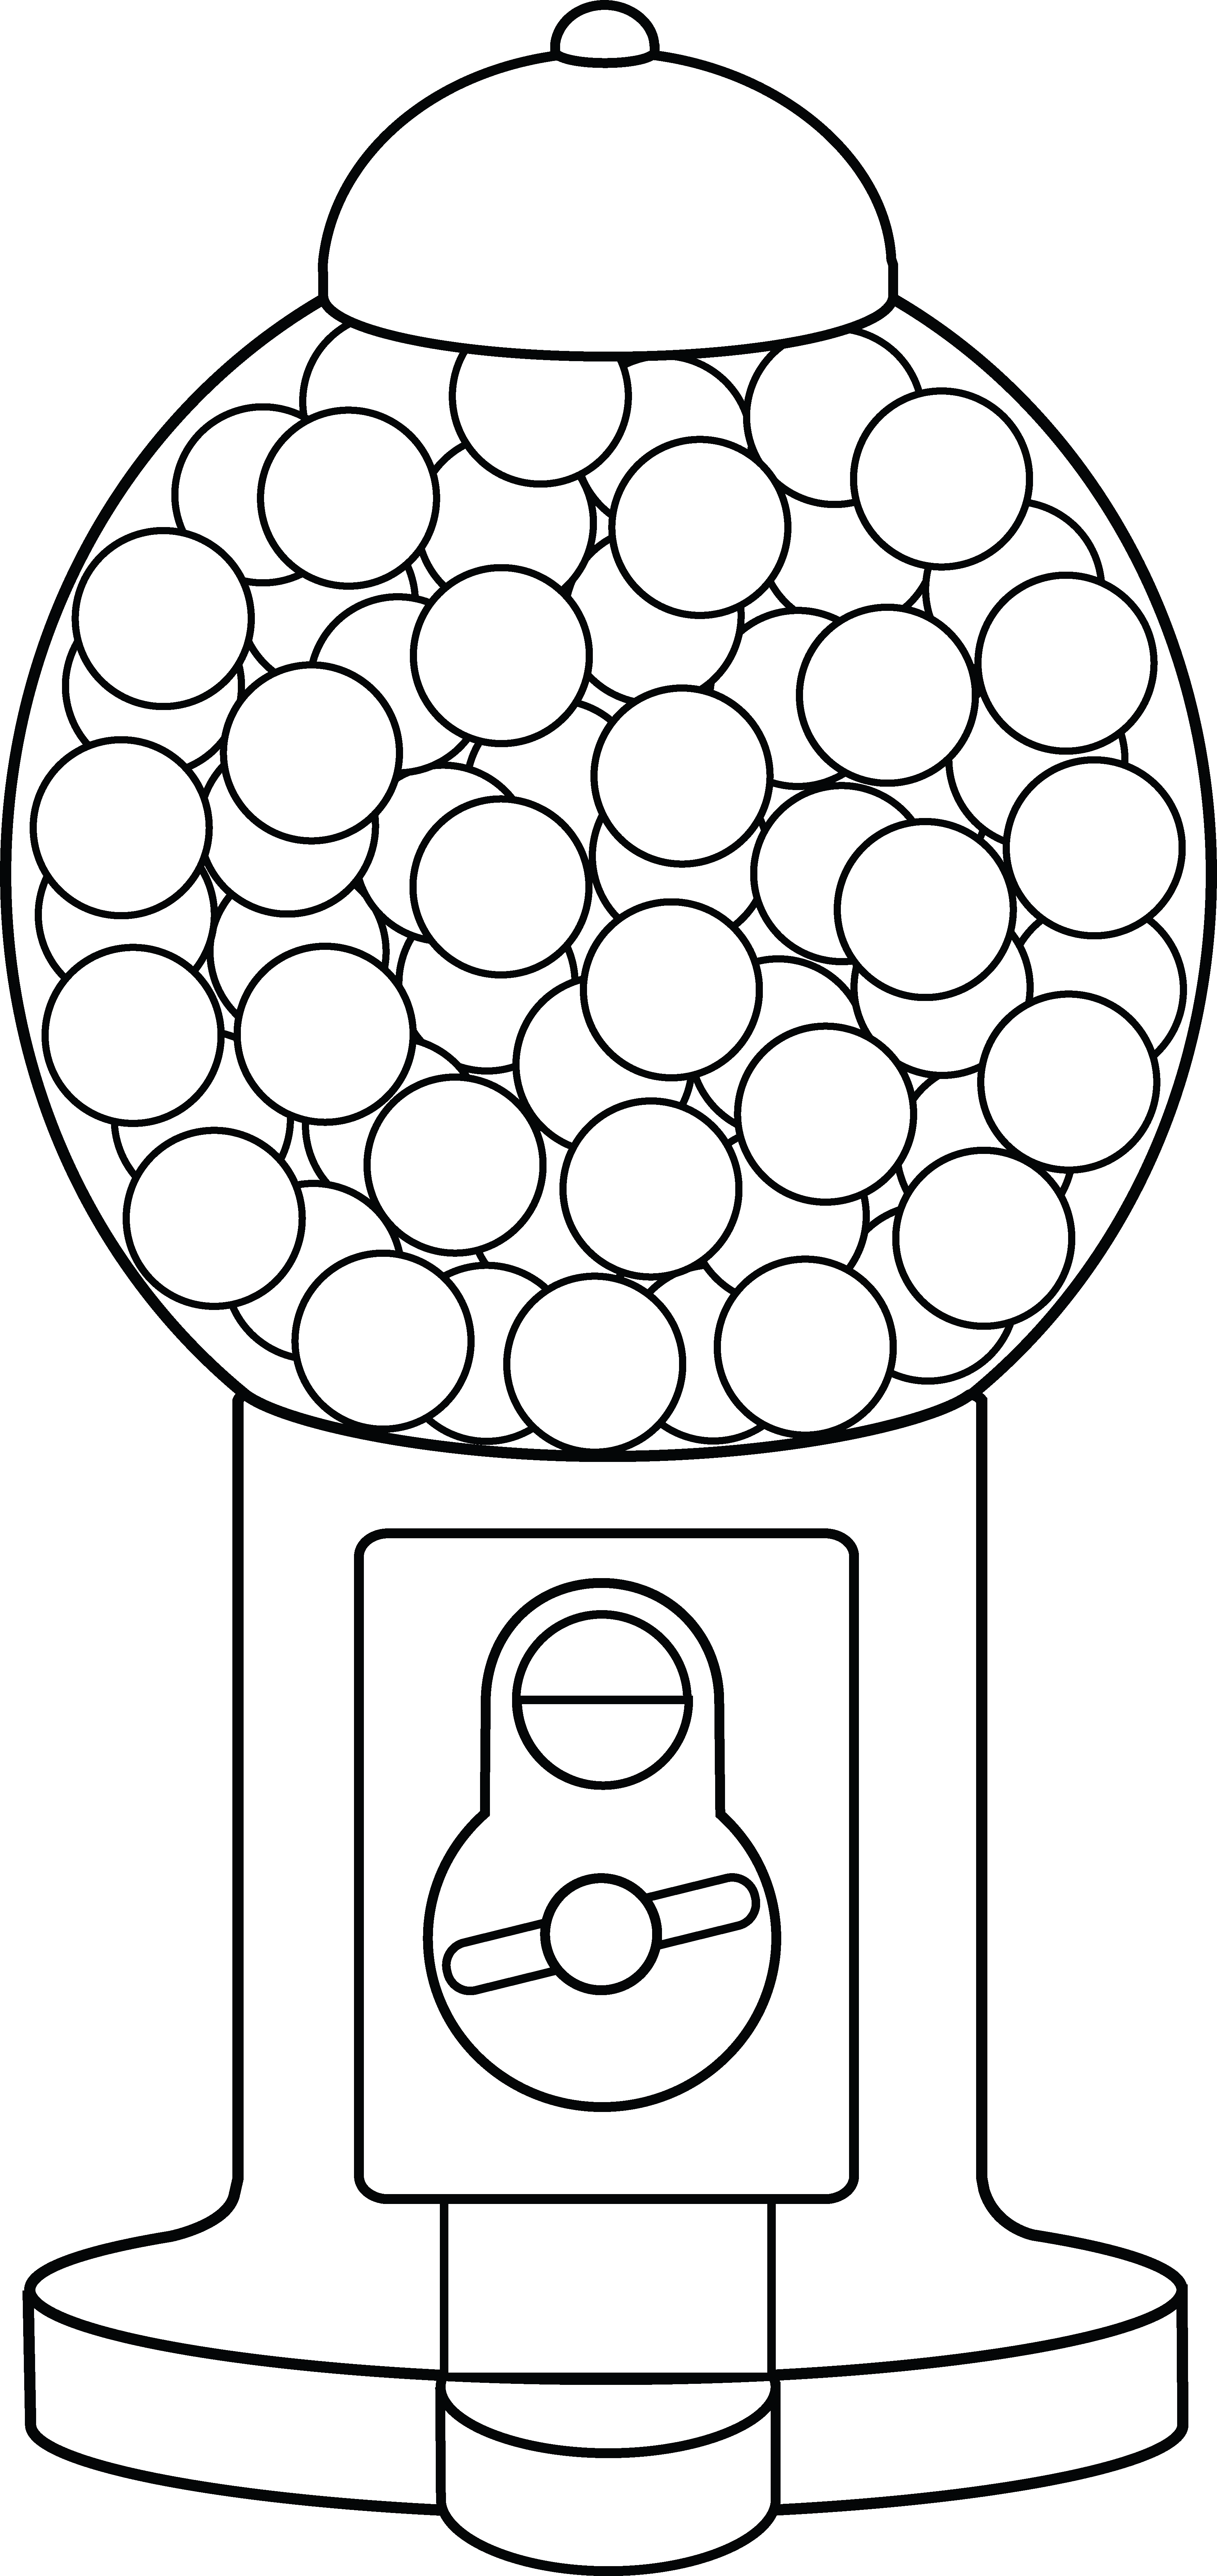 banner free download Gumball machine clipart outline.  collection of black